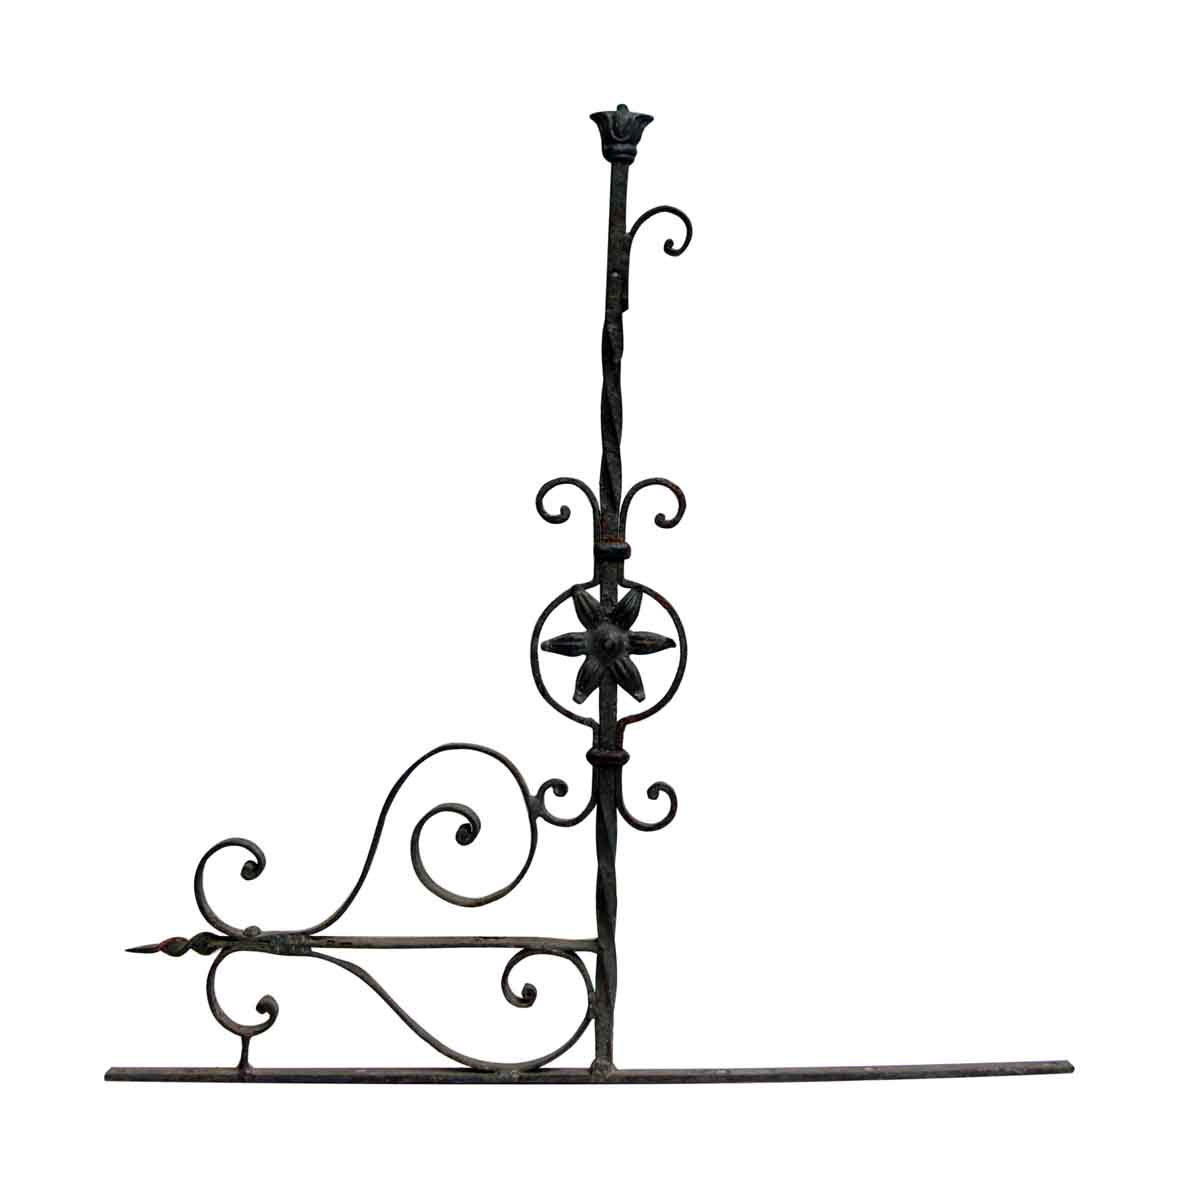 Decorative Iron Sign Holder Olde Good Things